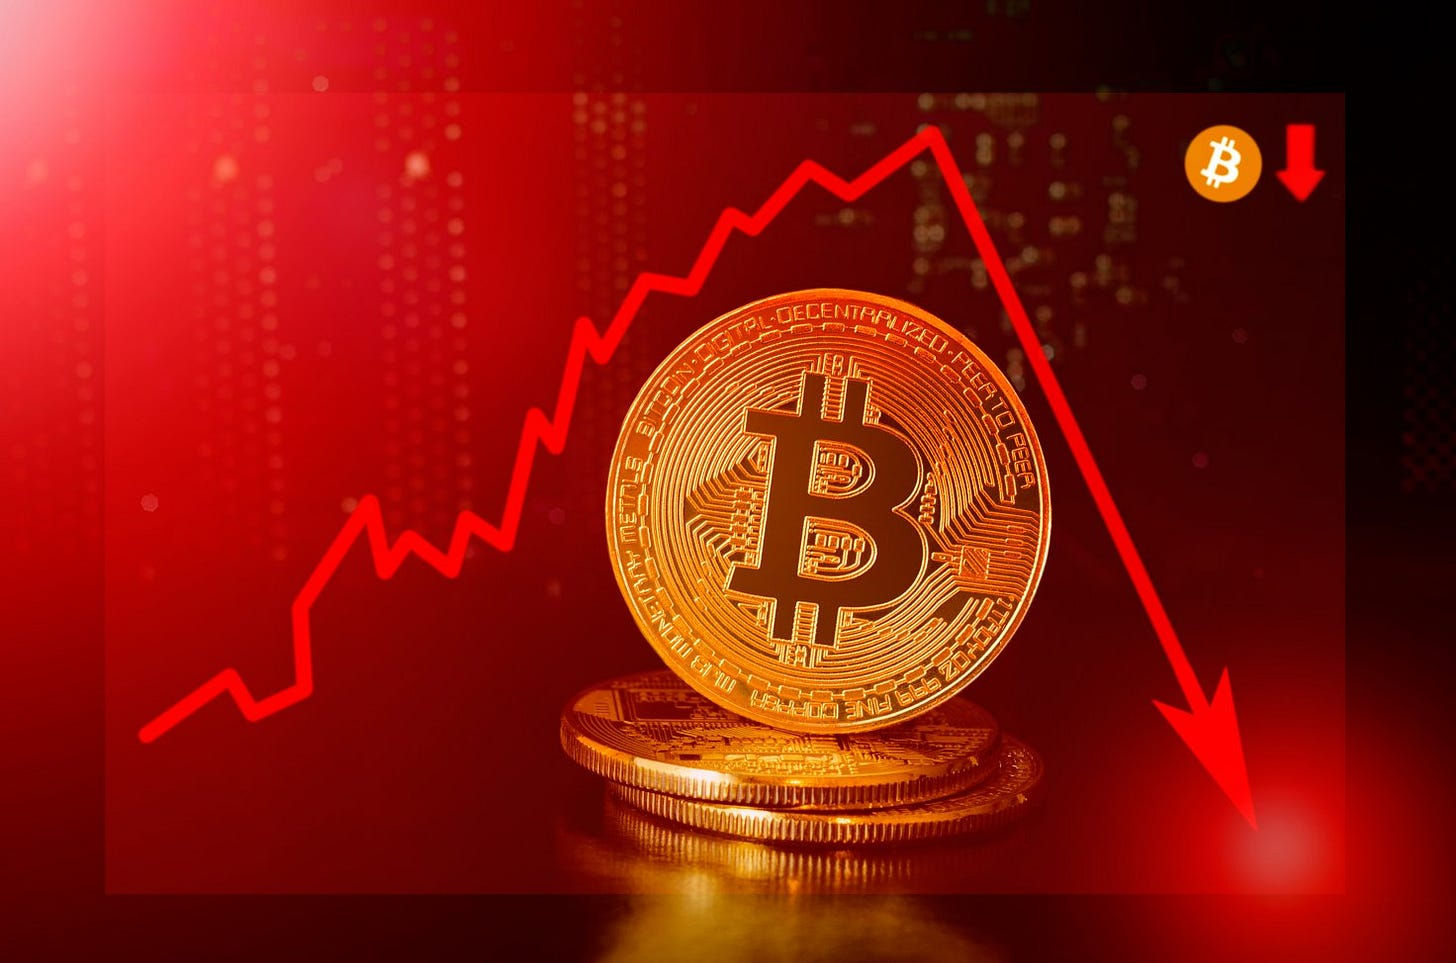 New Research] Bitcoin Crash: Is The Bull Run Over? | Currency.com